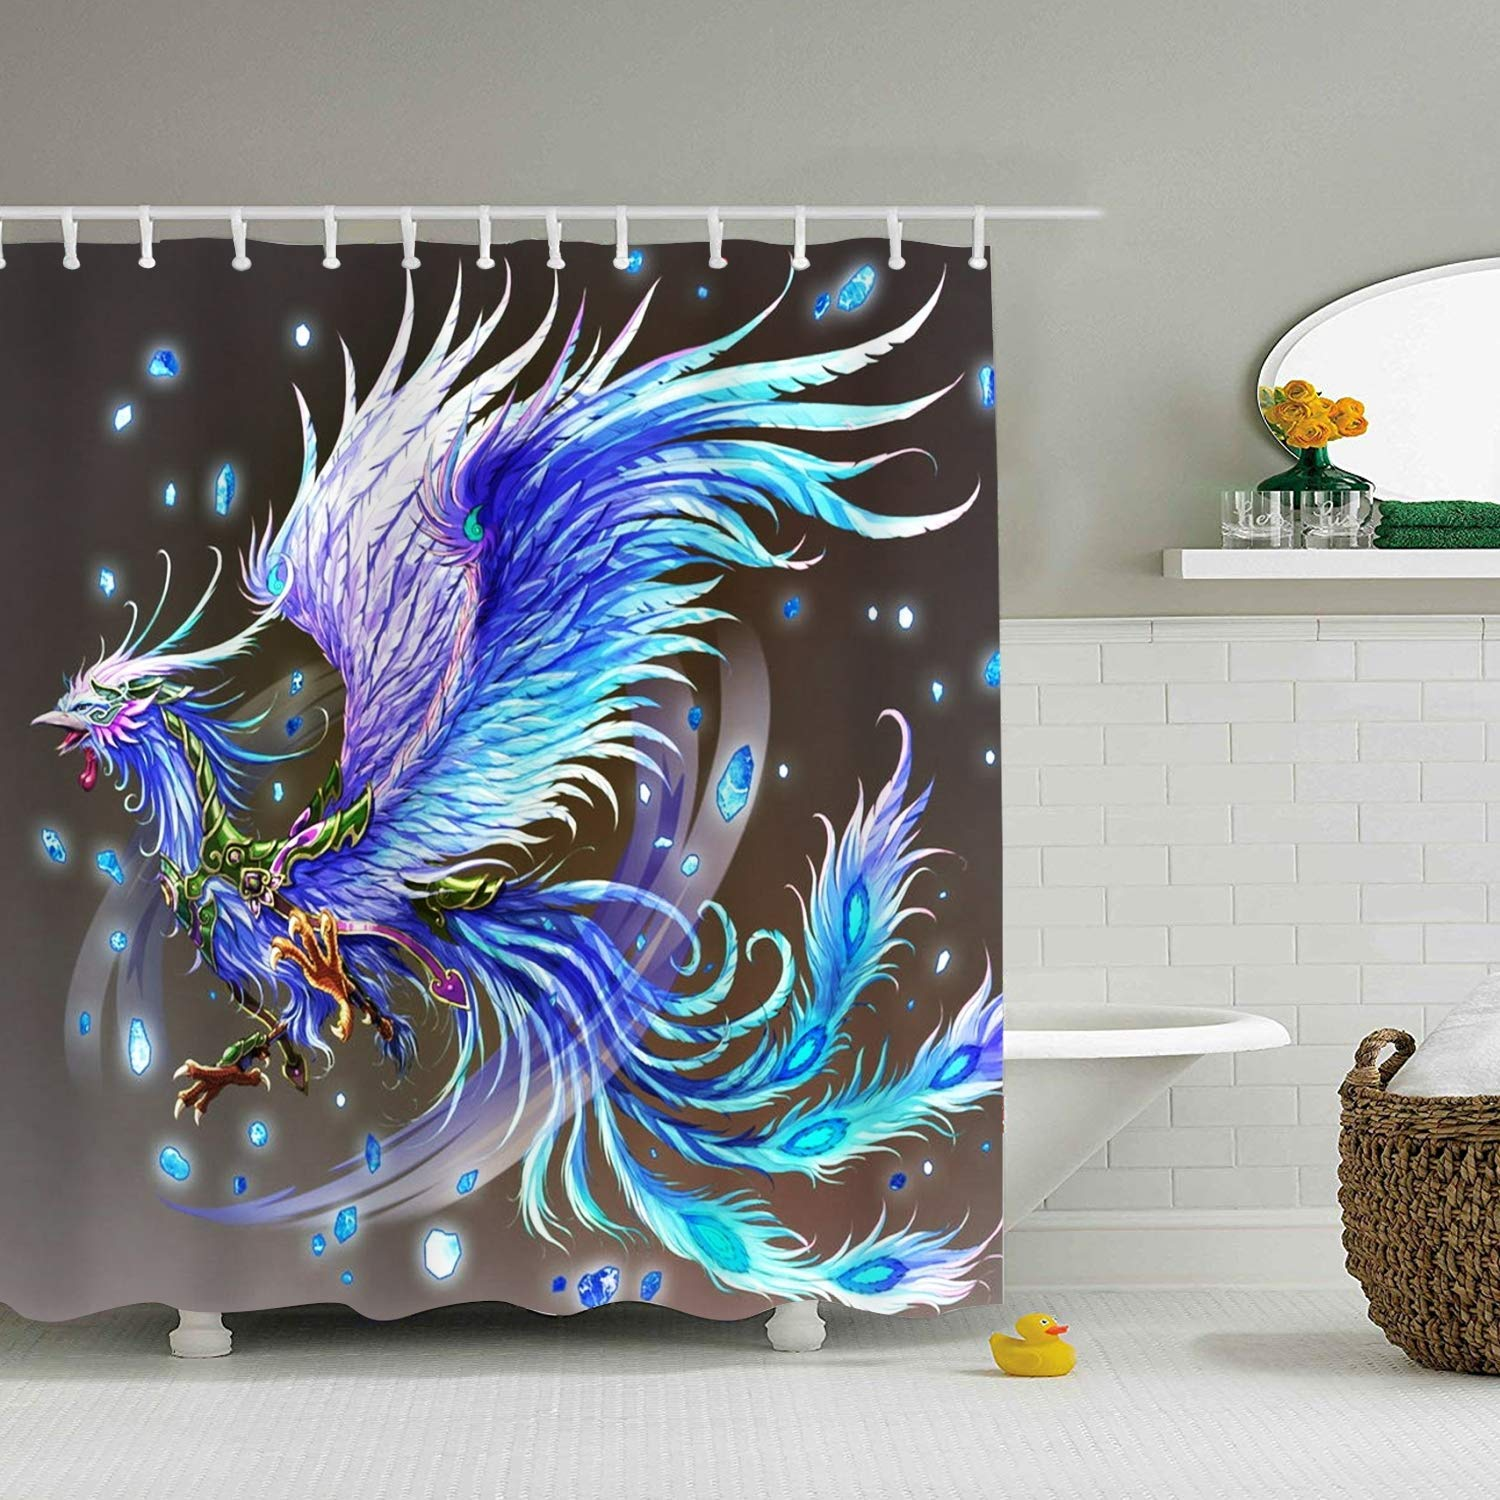 Get Quotations EFLN Shower Curtain Polyester 65 X 71 Awesome Phoenix Mildew Resistant Waterproof Bathroom Curtains